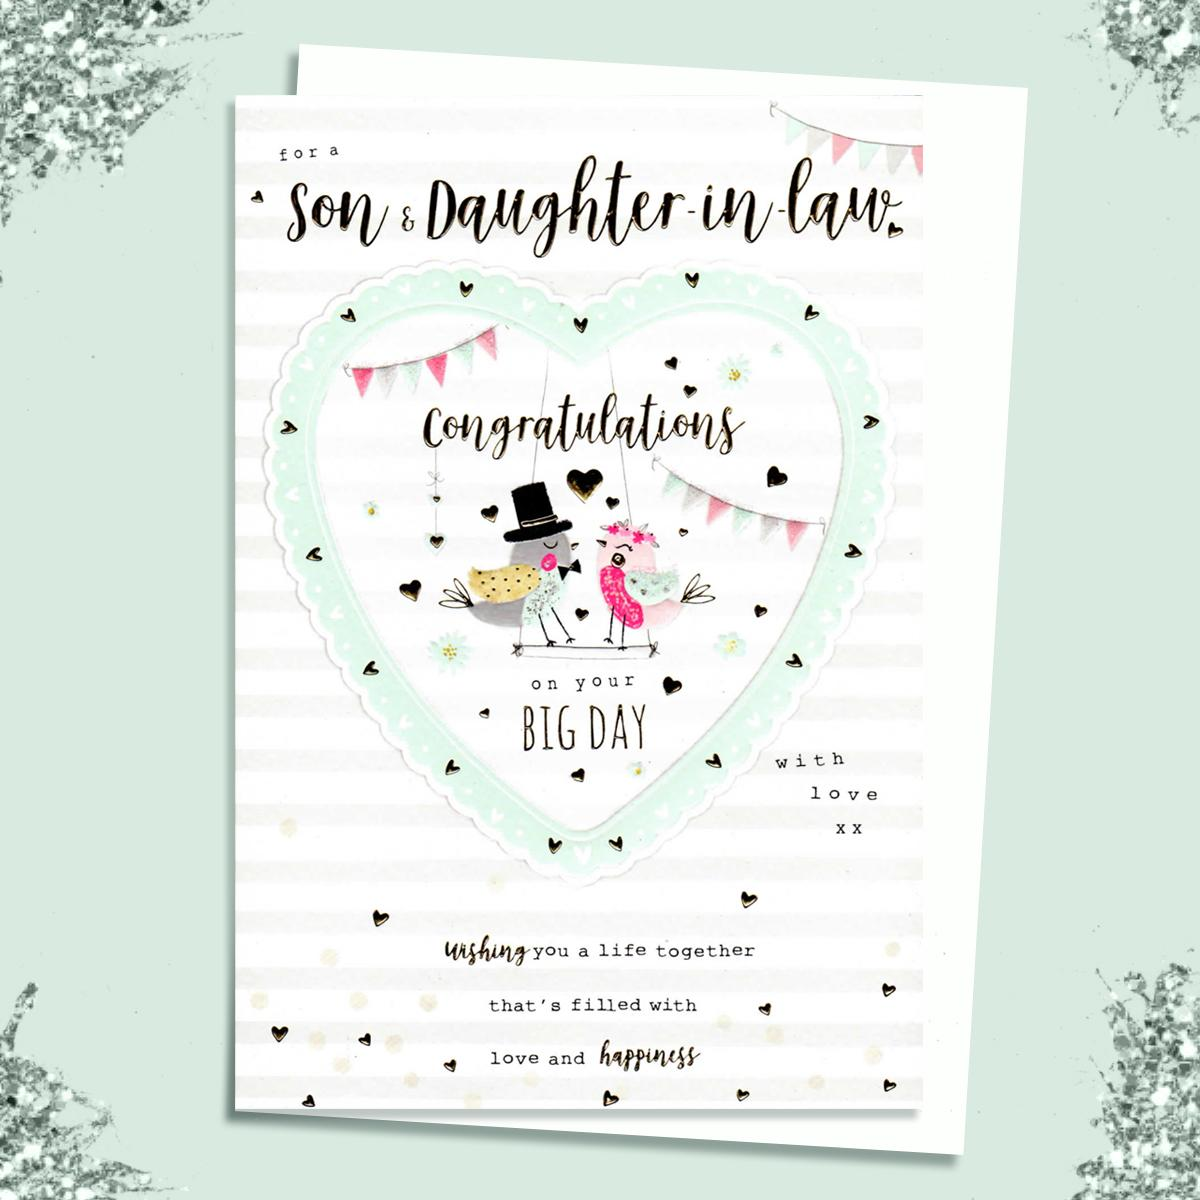 Son And Daughter In Law Wedding Day Card Sitting On A Display Shelf